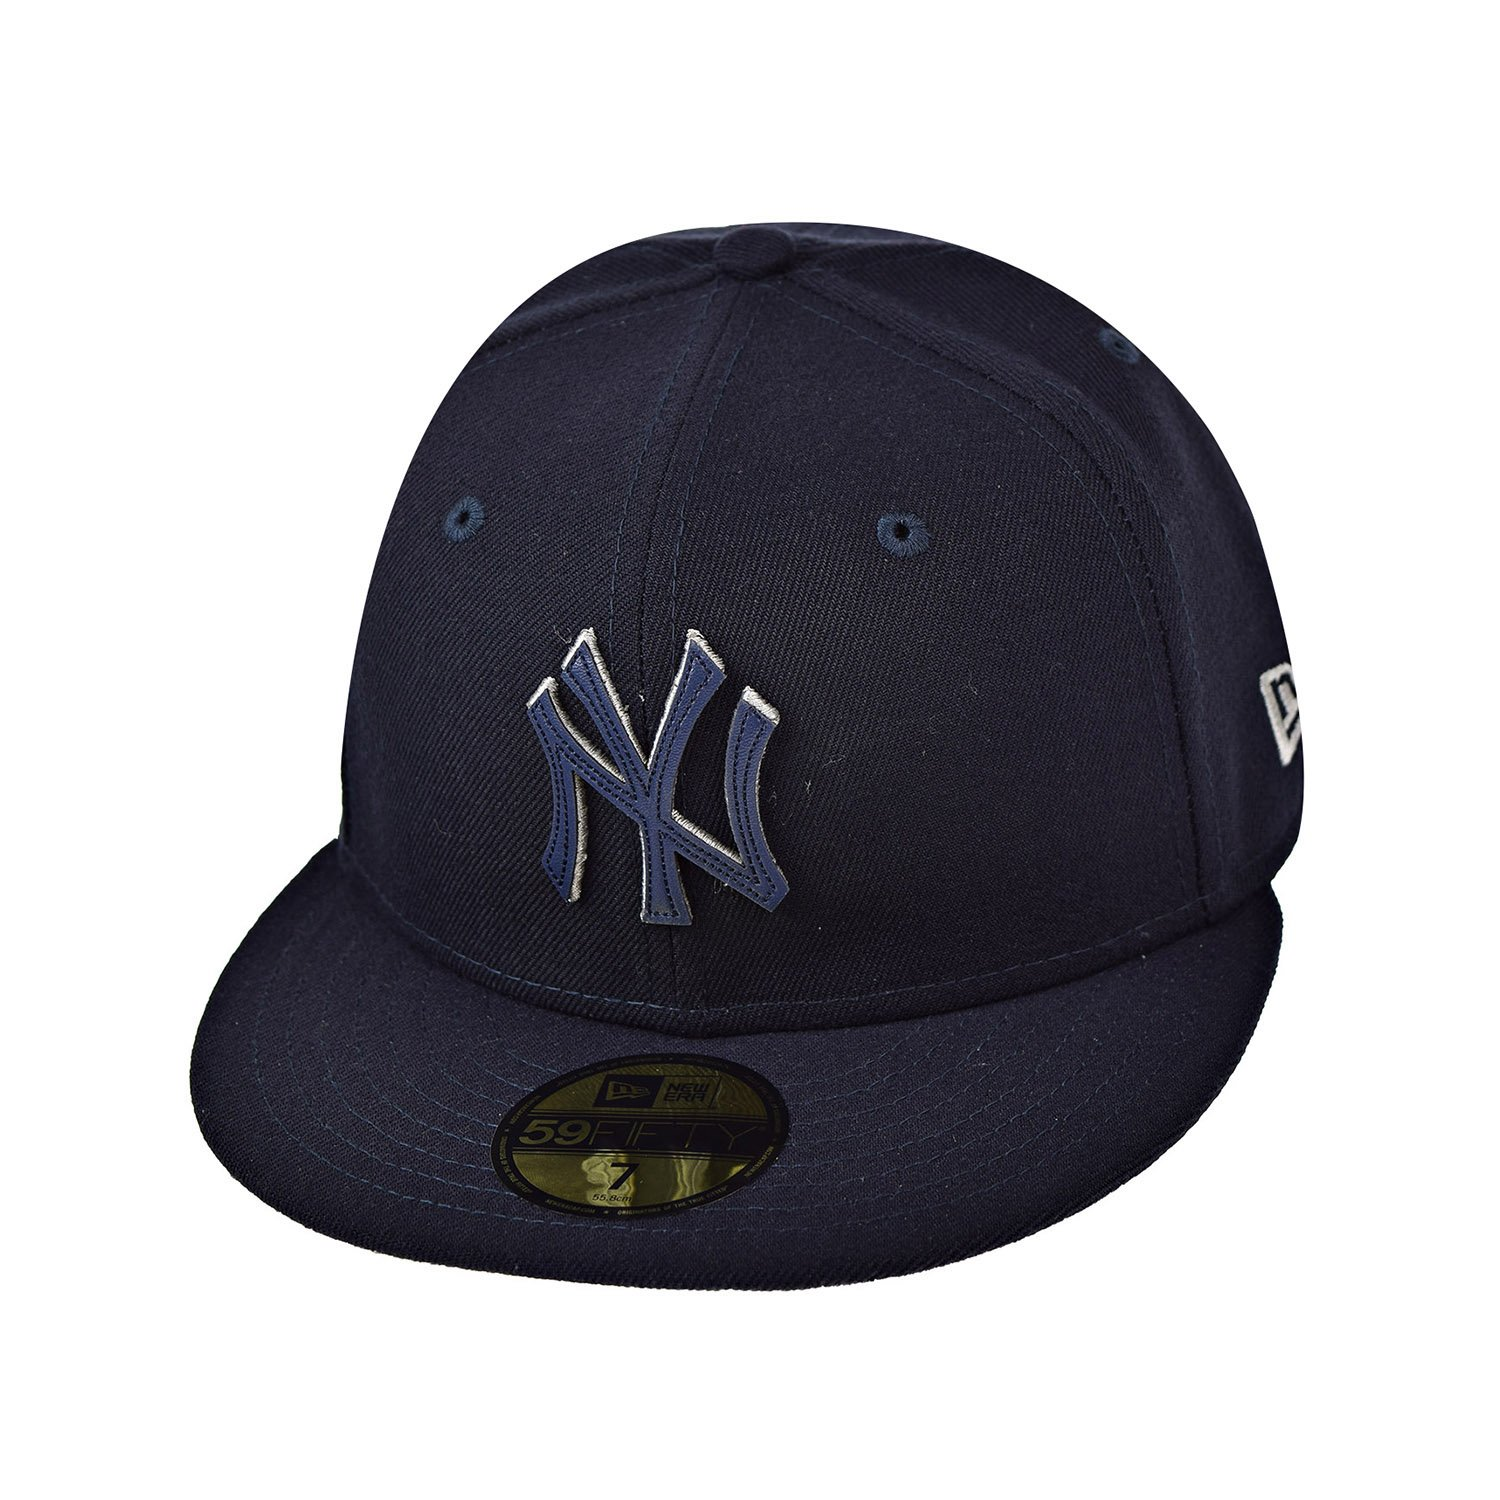 uk unisex adjustable trucker baseball cap 7b452 ba76b  coupon code new era  new york yankees leather pop 59fifty mens fitted hat cap navy blue 6c57247f1a